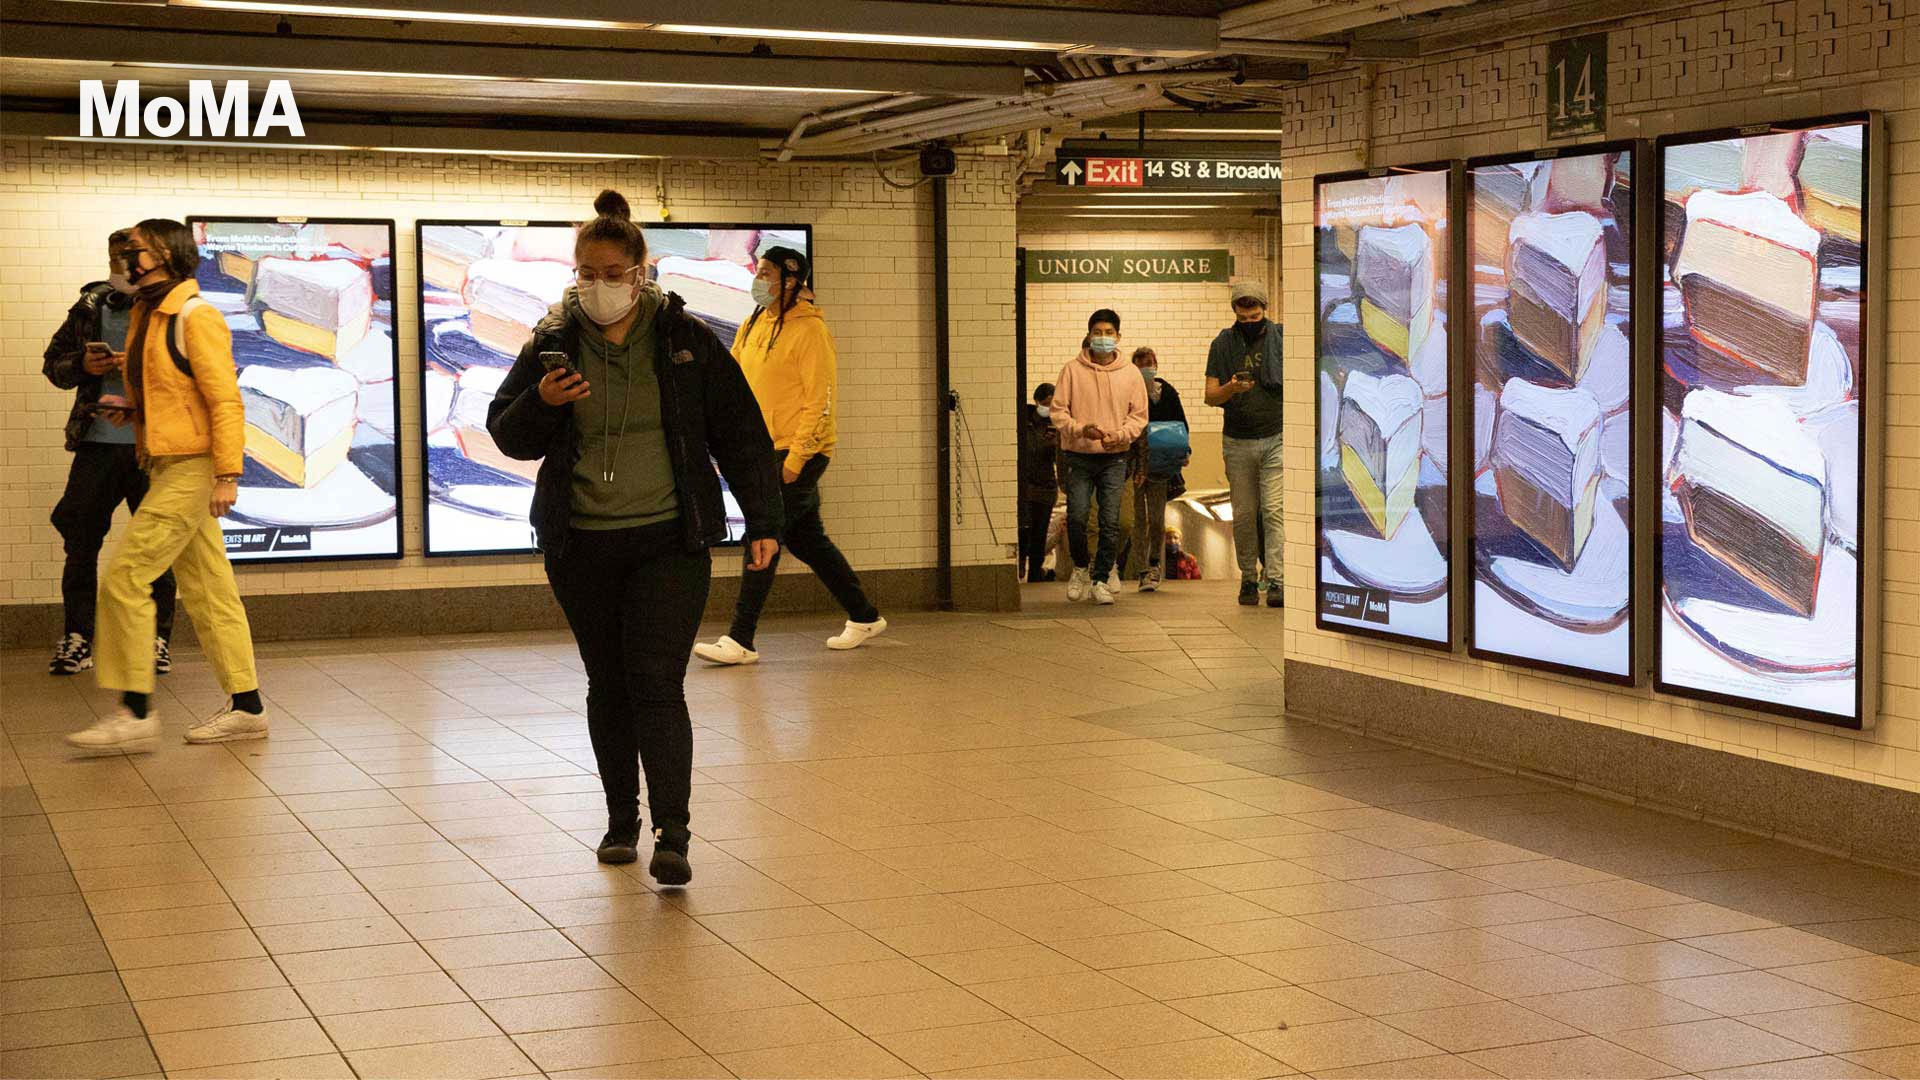 Triptych digital display of MoMA art in subway station